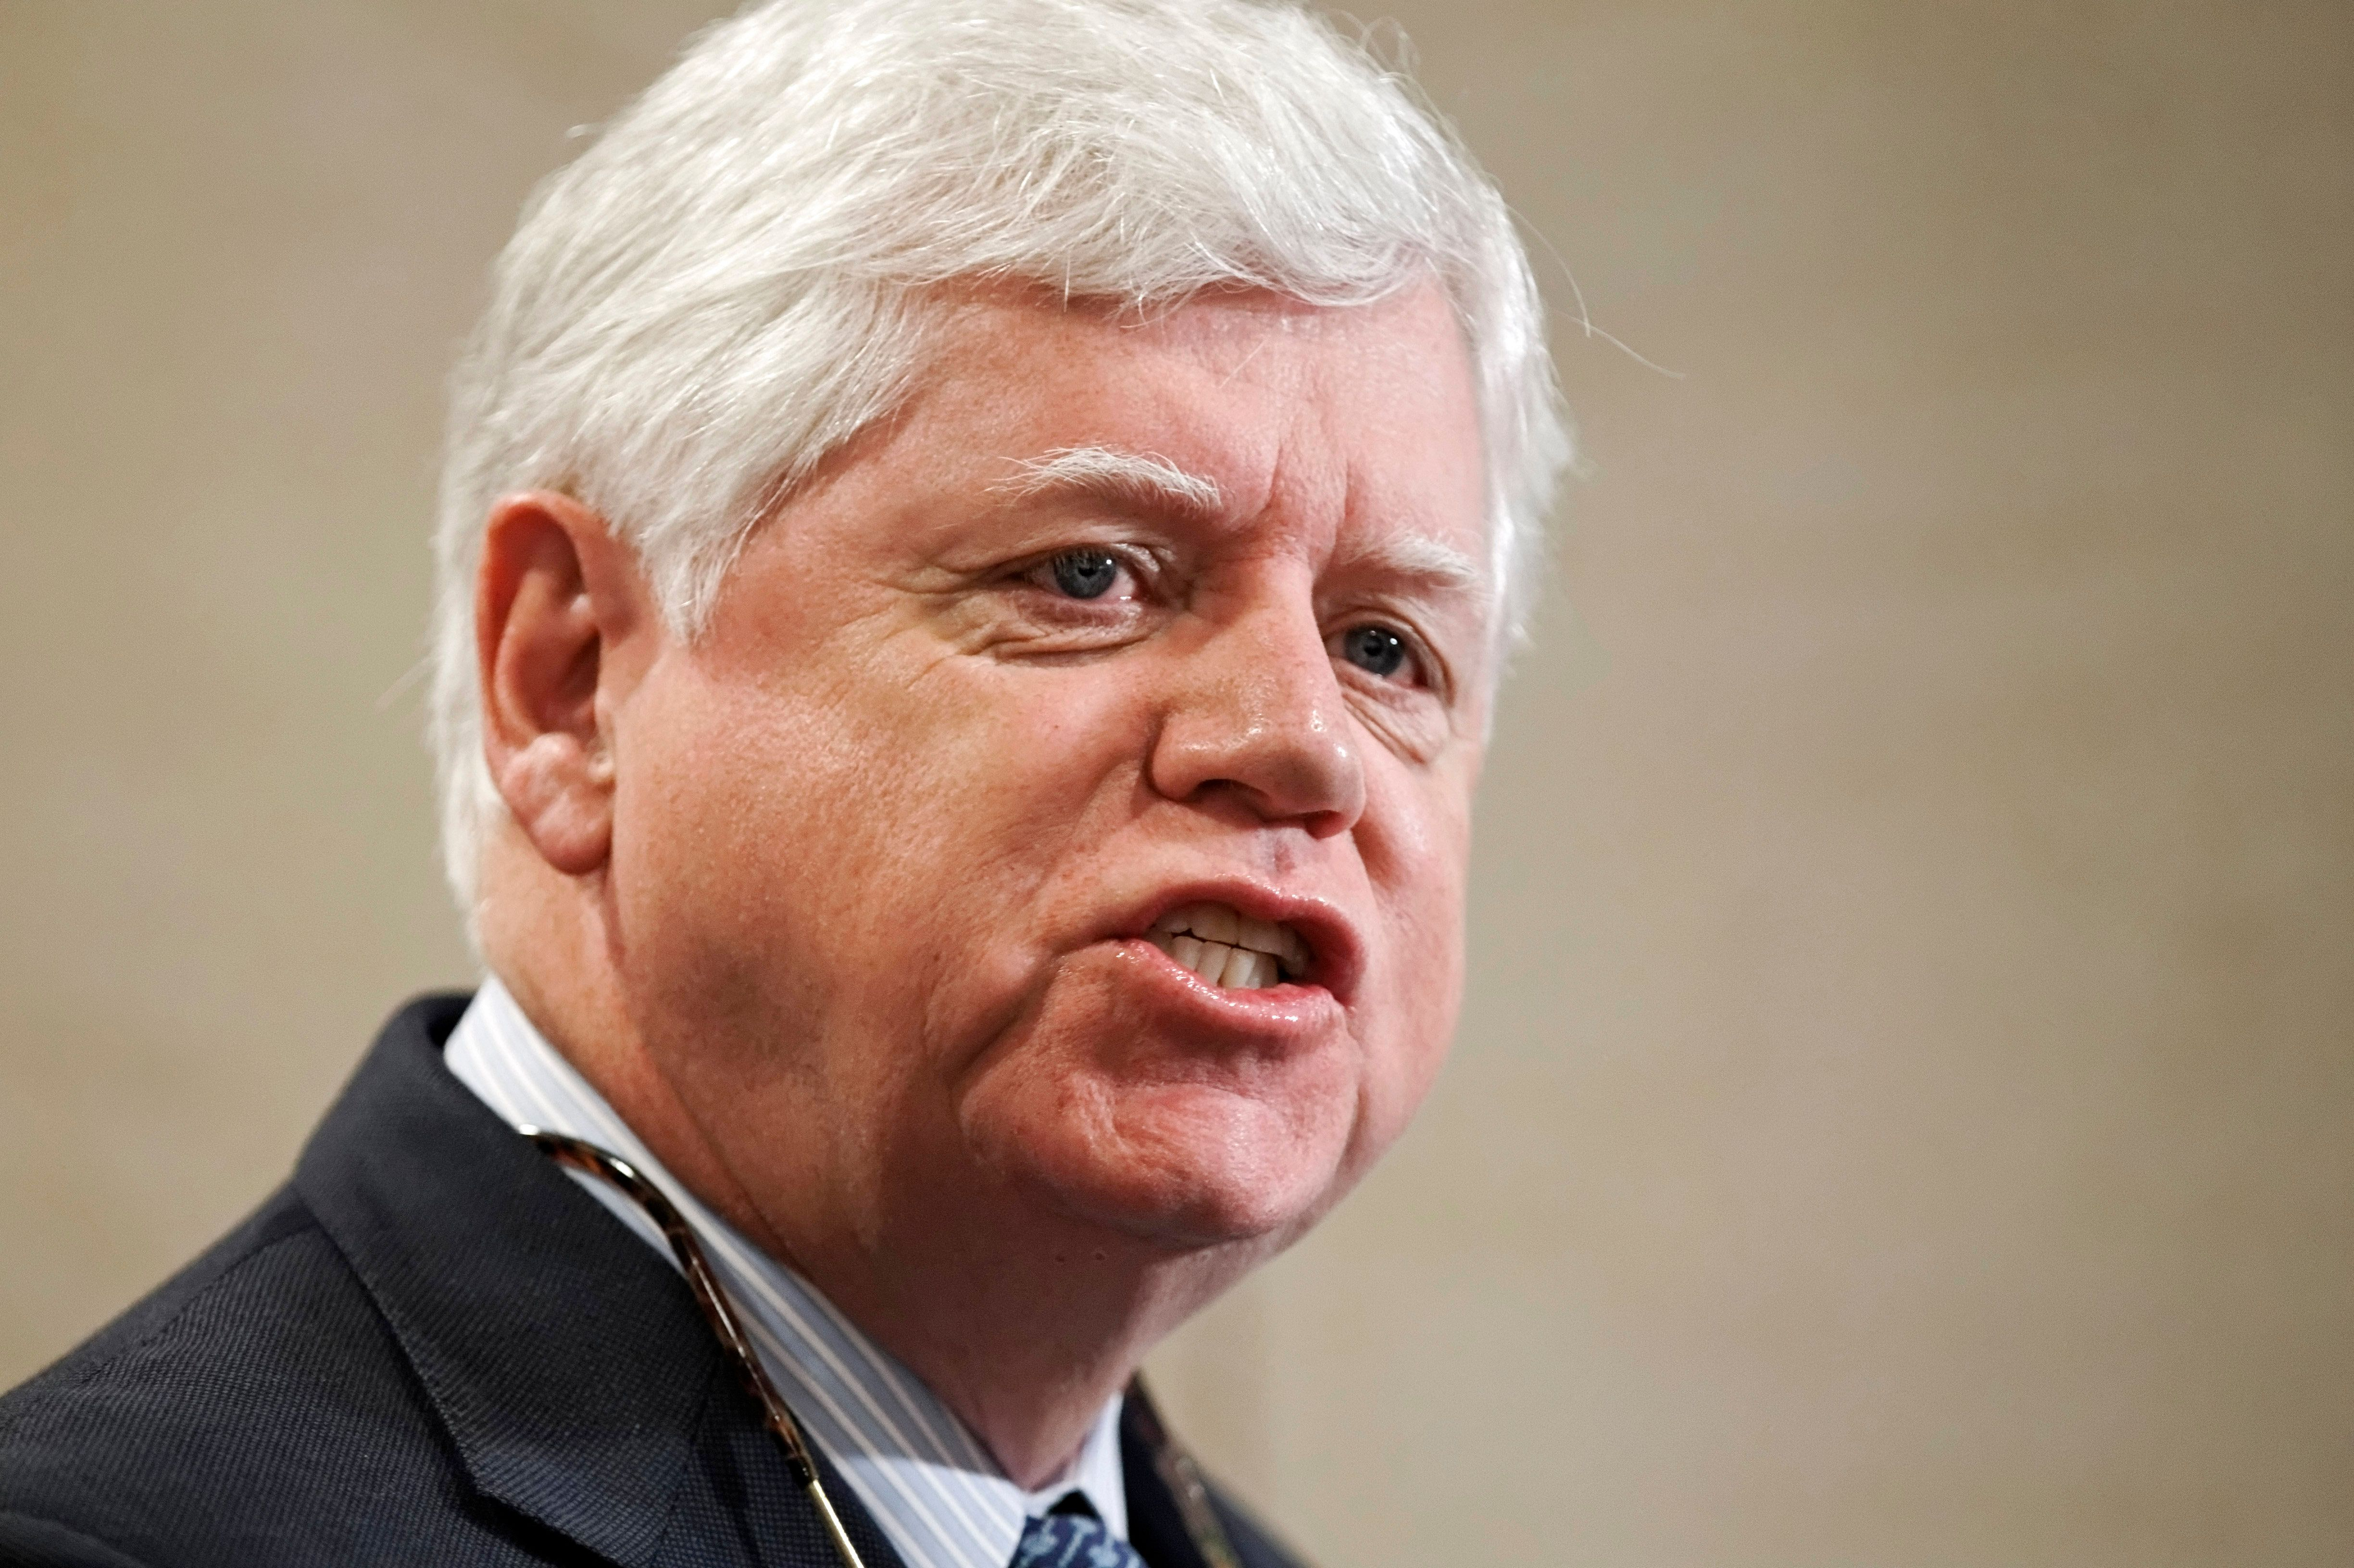 Rep. John Larson (D-Conn.) speaks on Capitol Hill in January 2012. He has recruited more than 200 co-sponsors for his Social